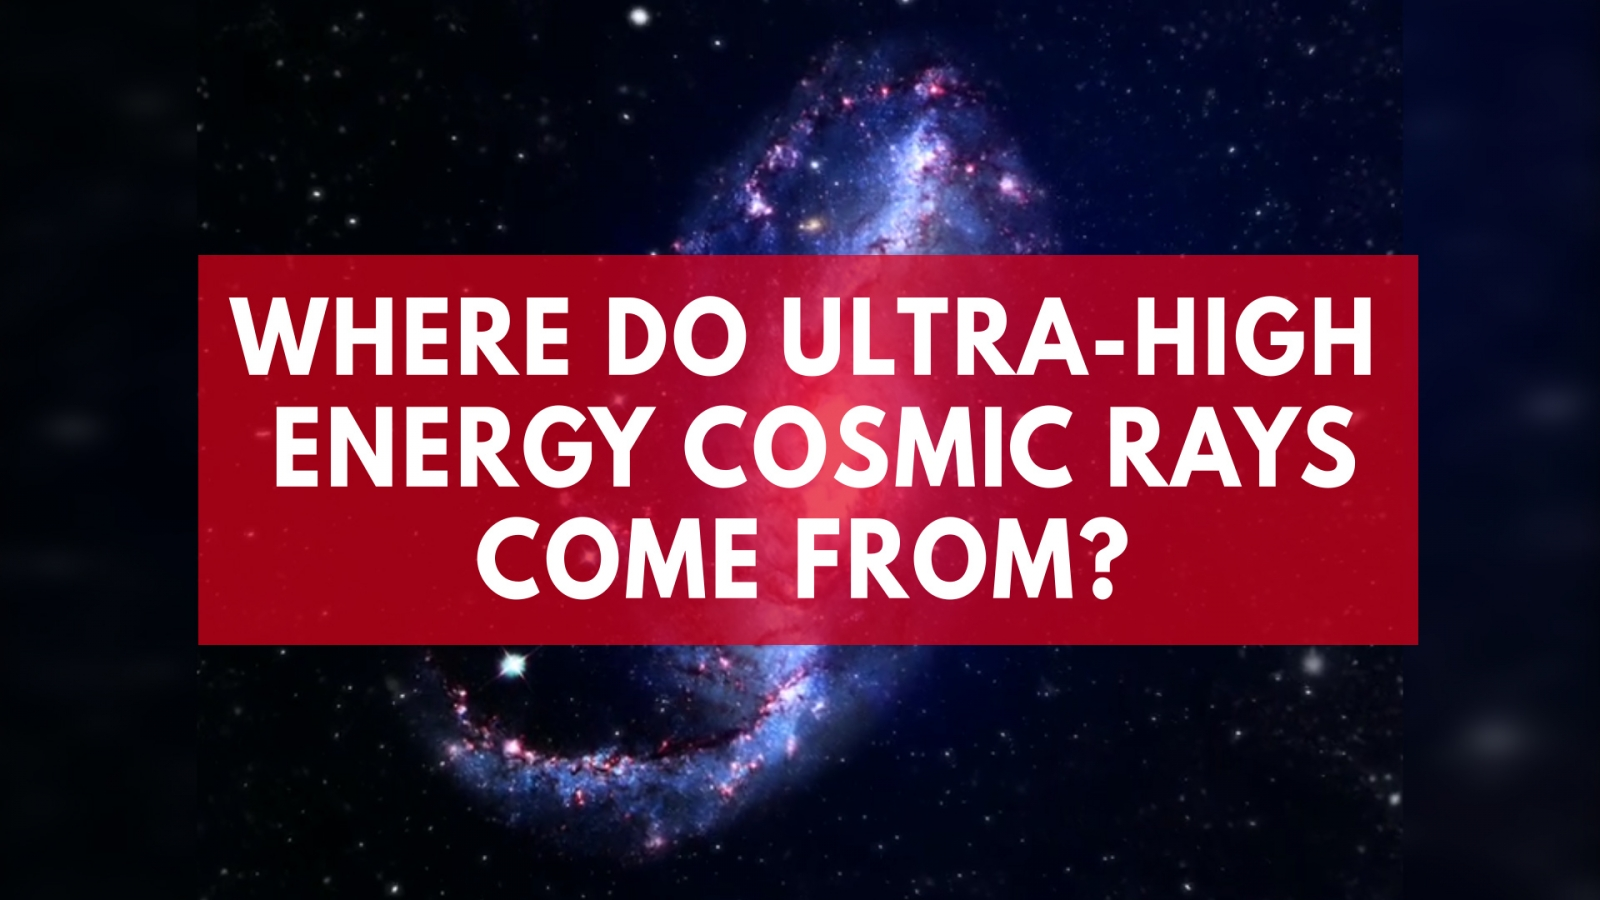 extreme-cosmic-rays-come-from-mystery-sources-in-galaxies-far-far-away